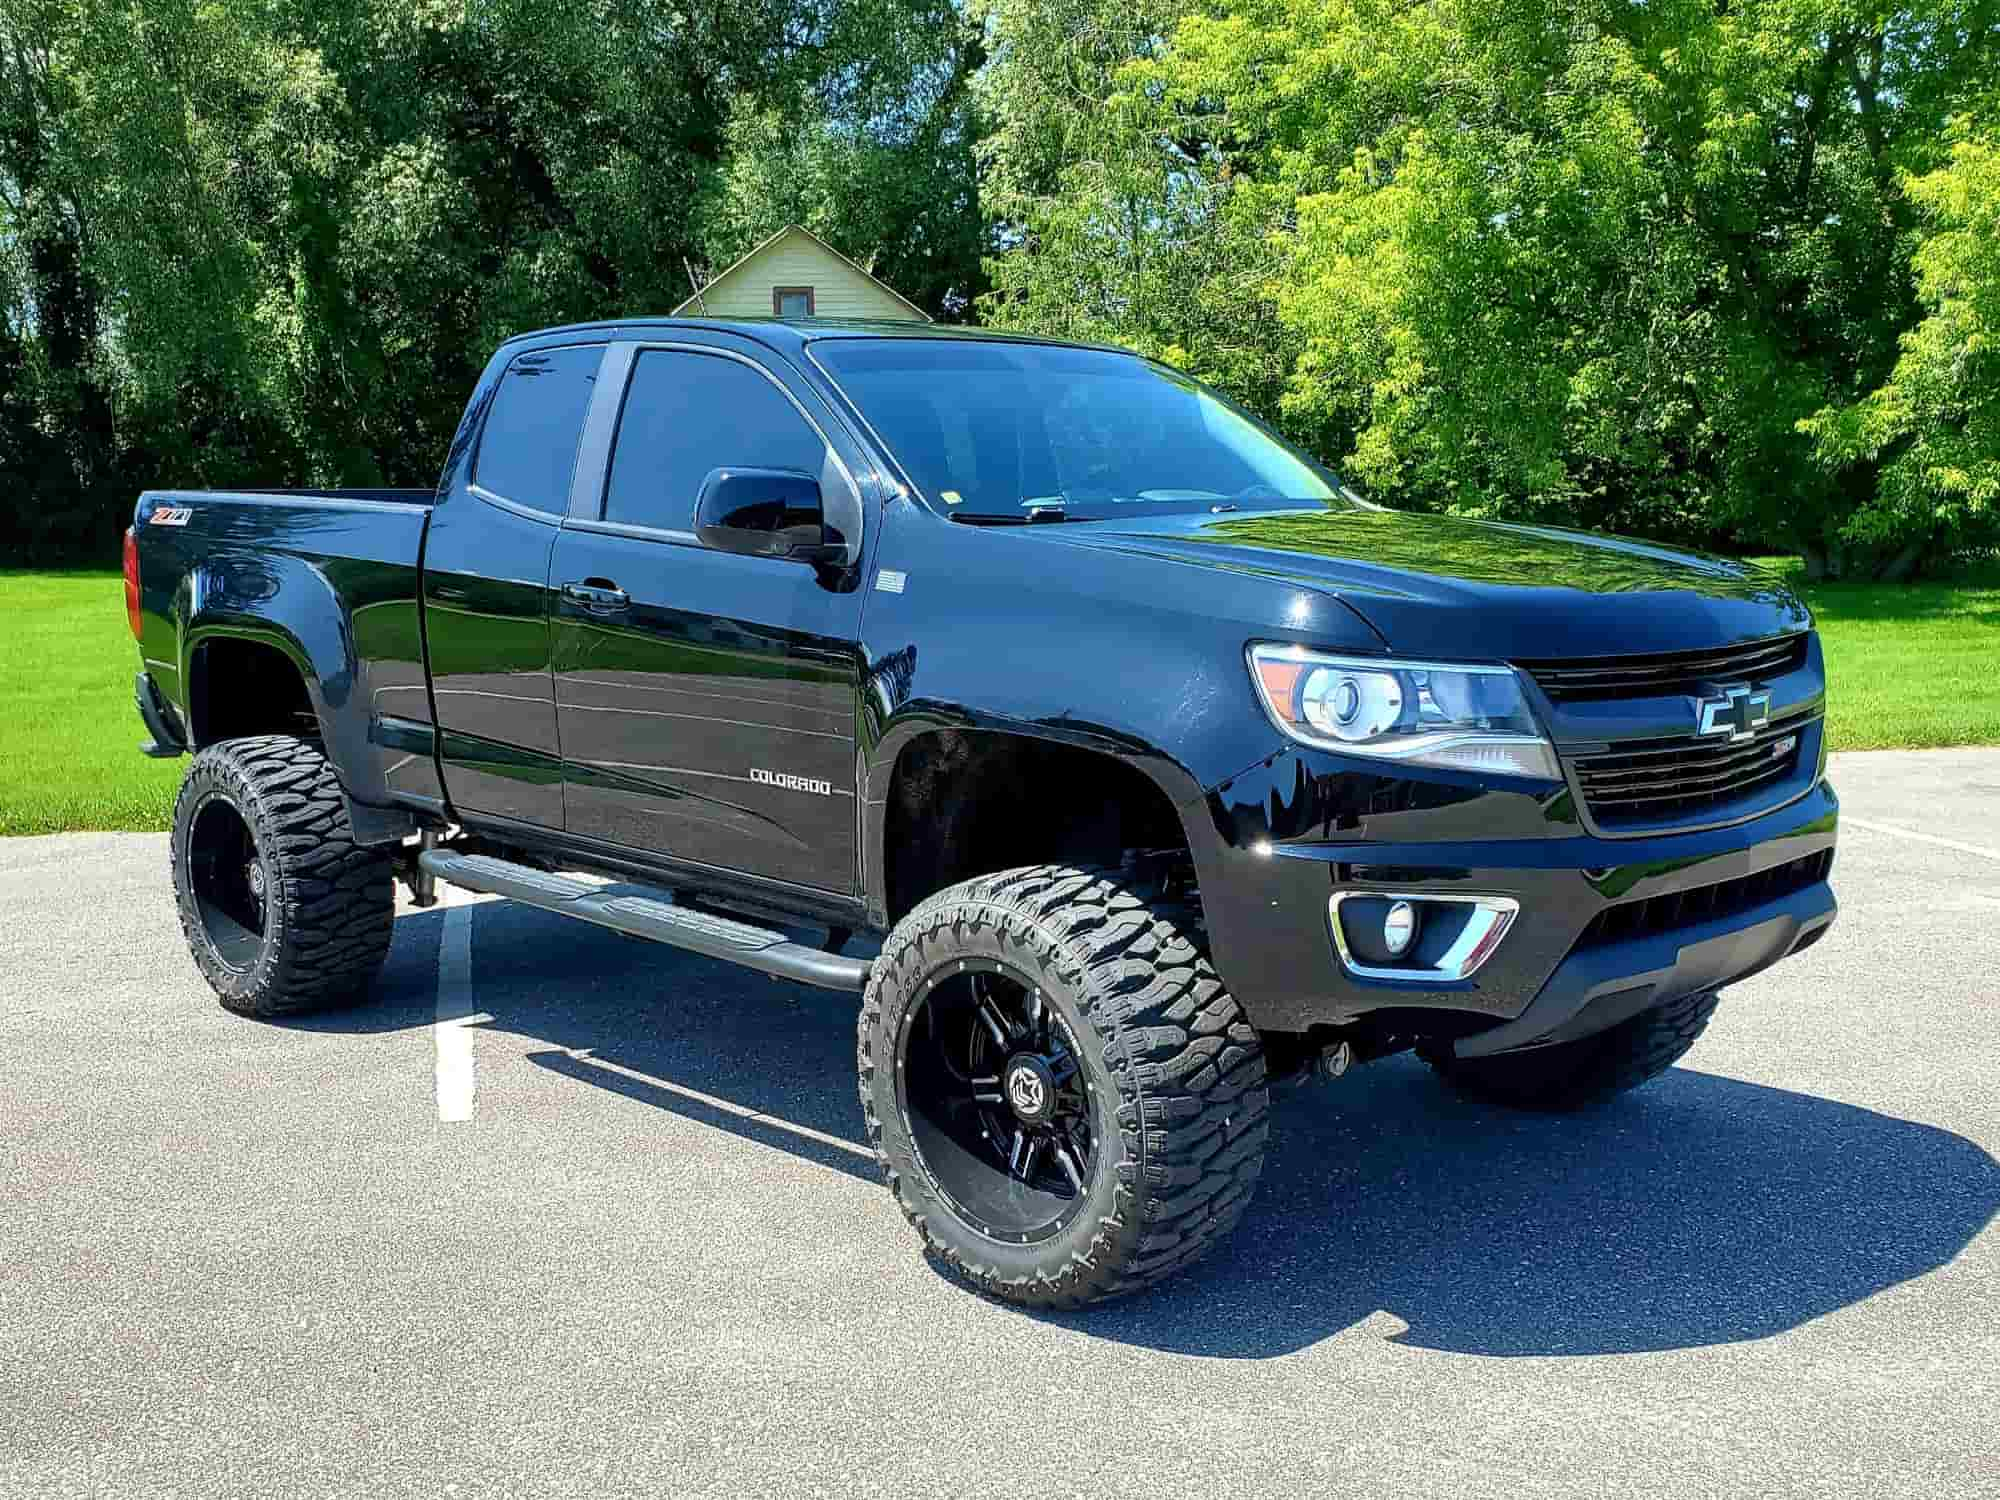 A black and lifted Chevy Colorado running the Anthem Off-Road Equalizer